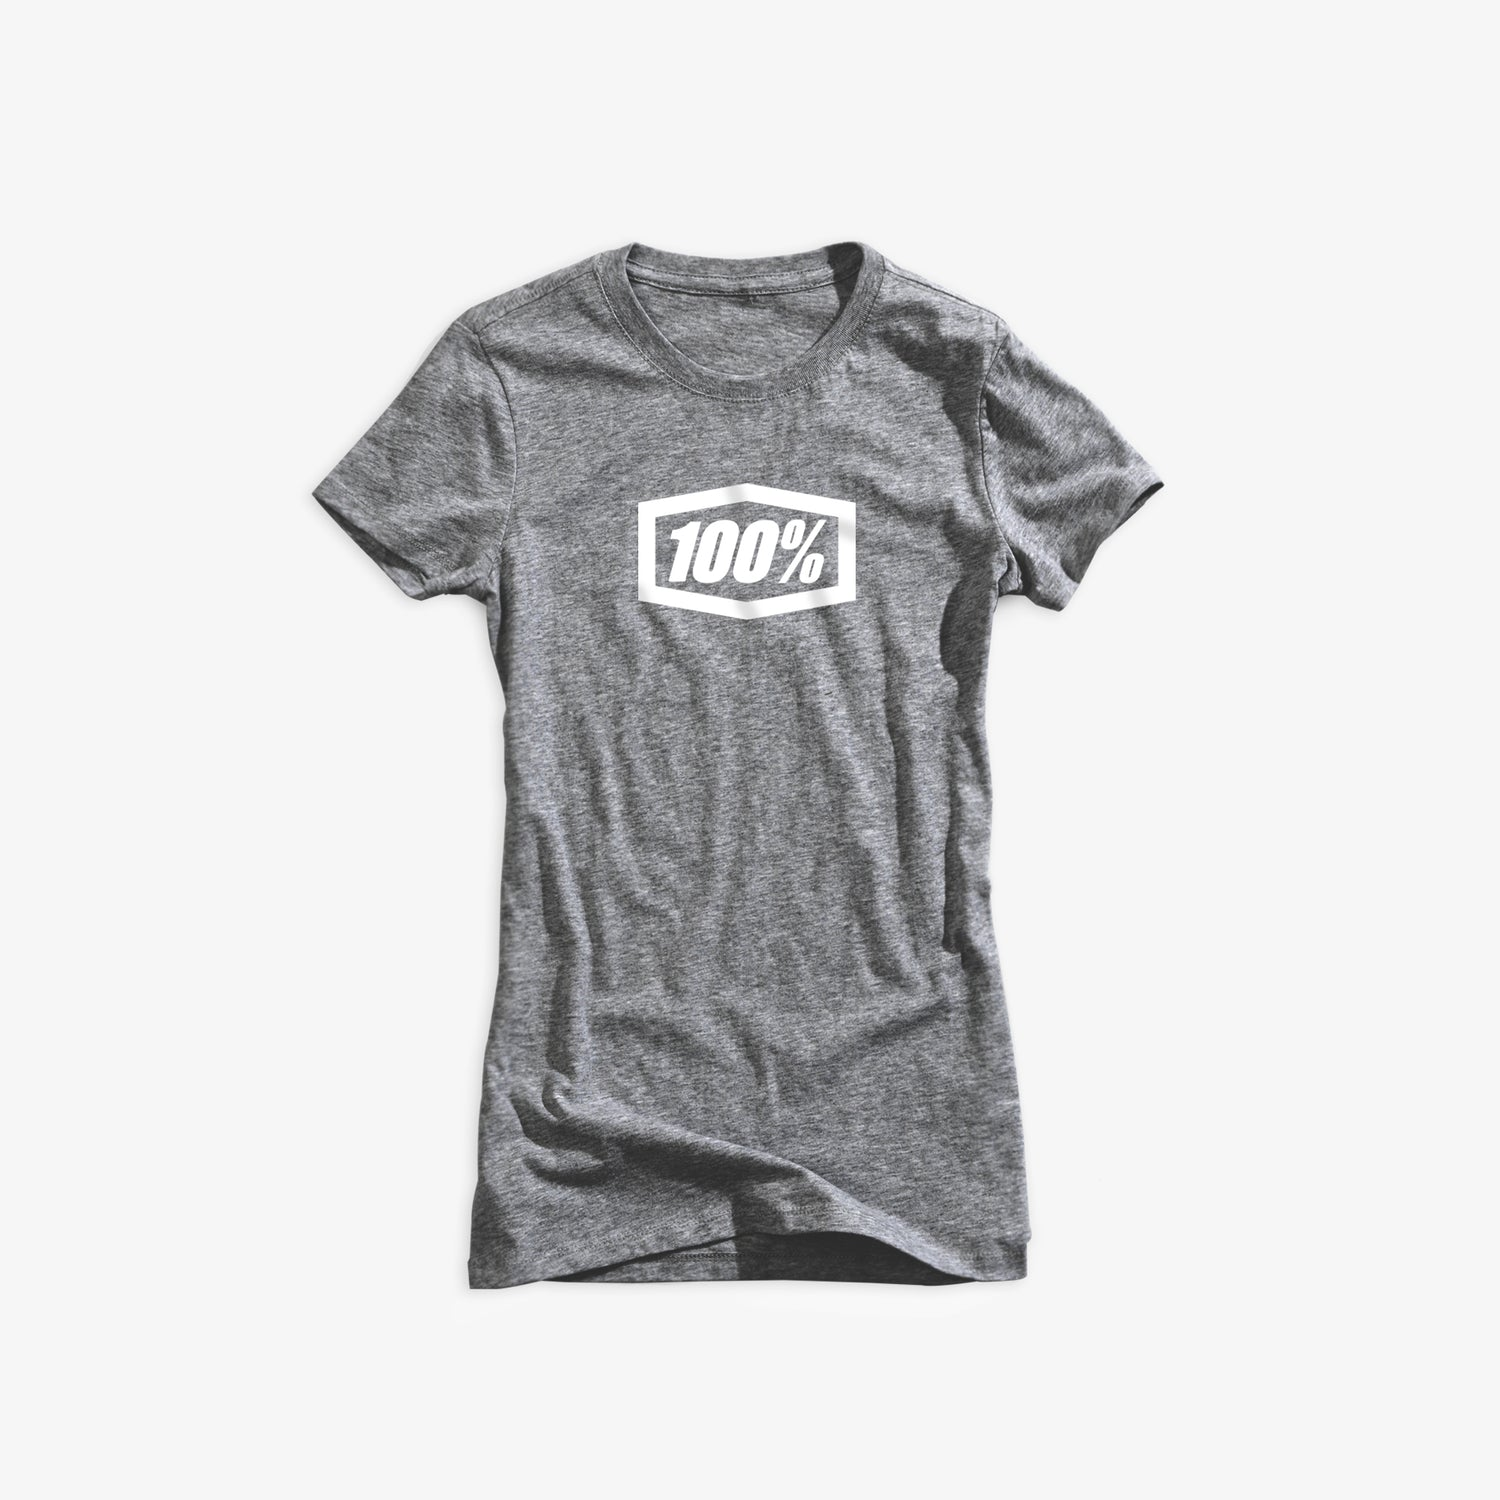 ESSENTIAL T-Shirt - Grey Heather - Womens